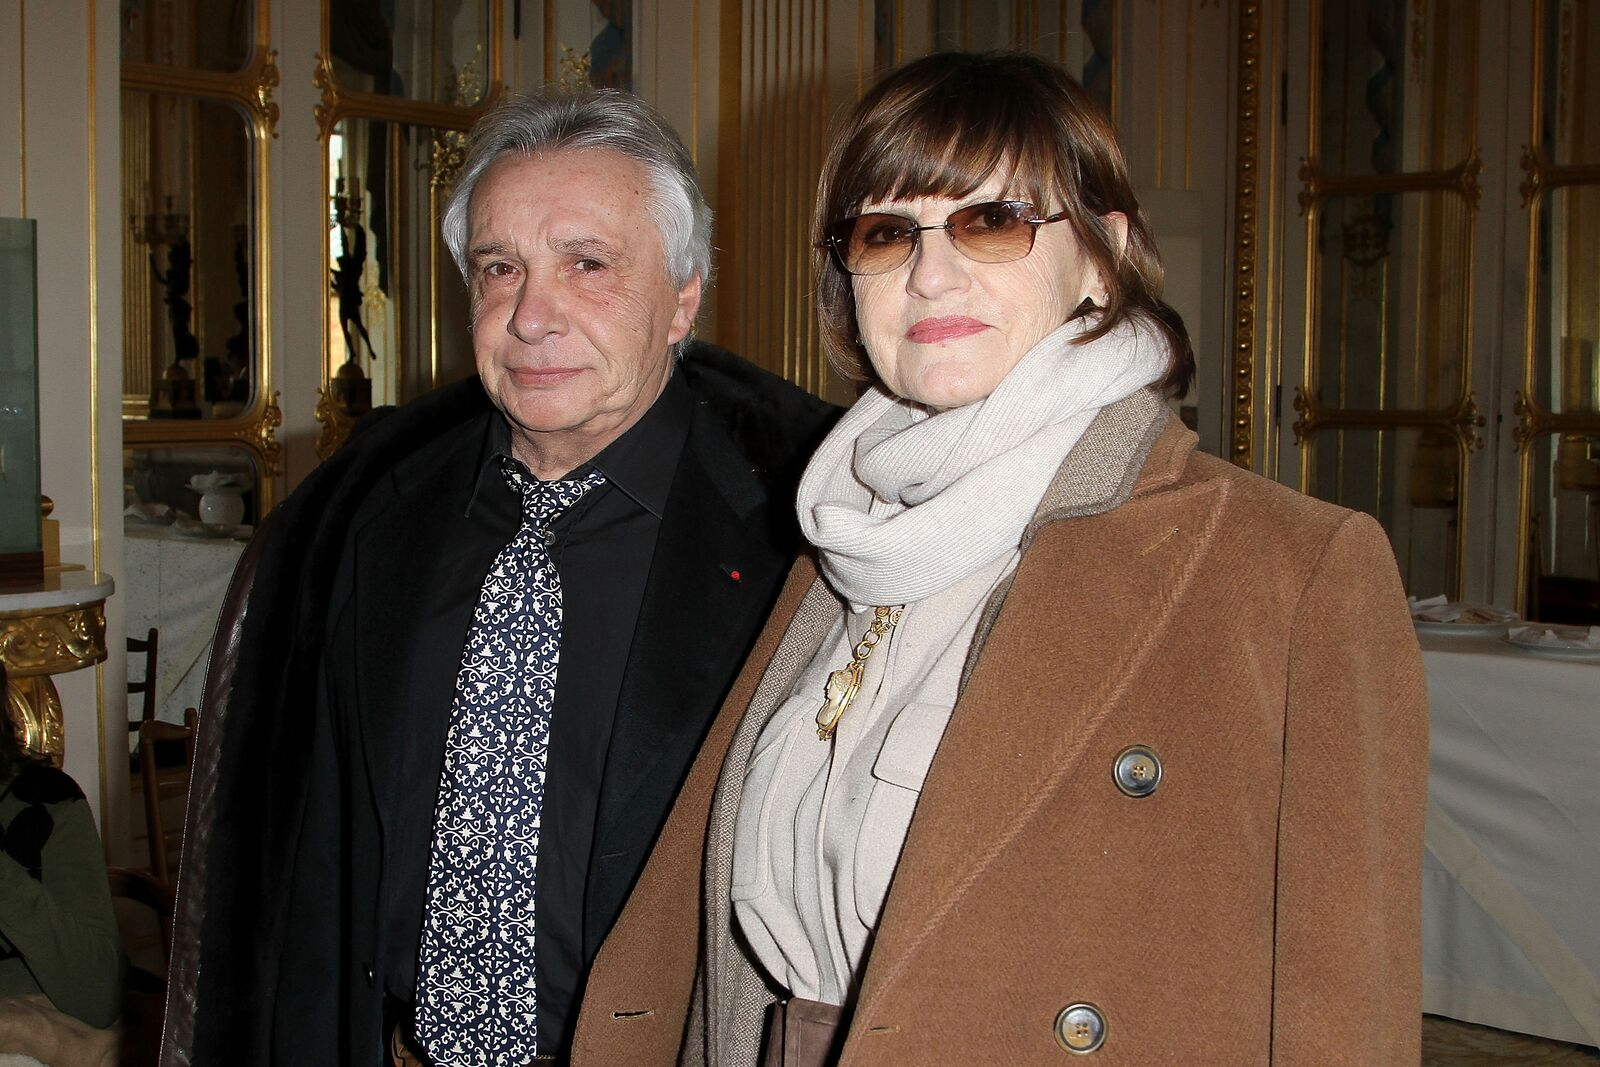 Michel Sardou avec sa femme Françoise Pettré.  | Photo : GettyImage